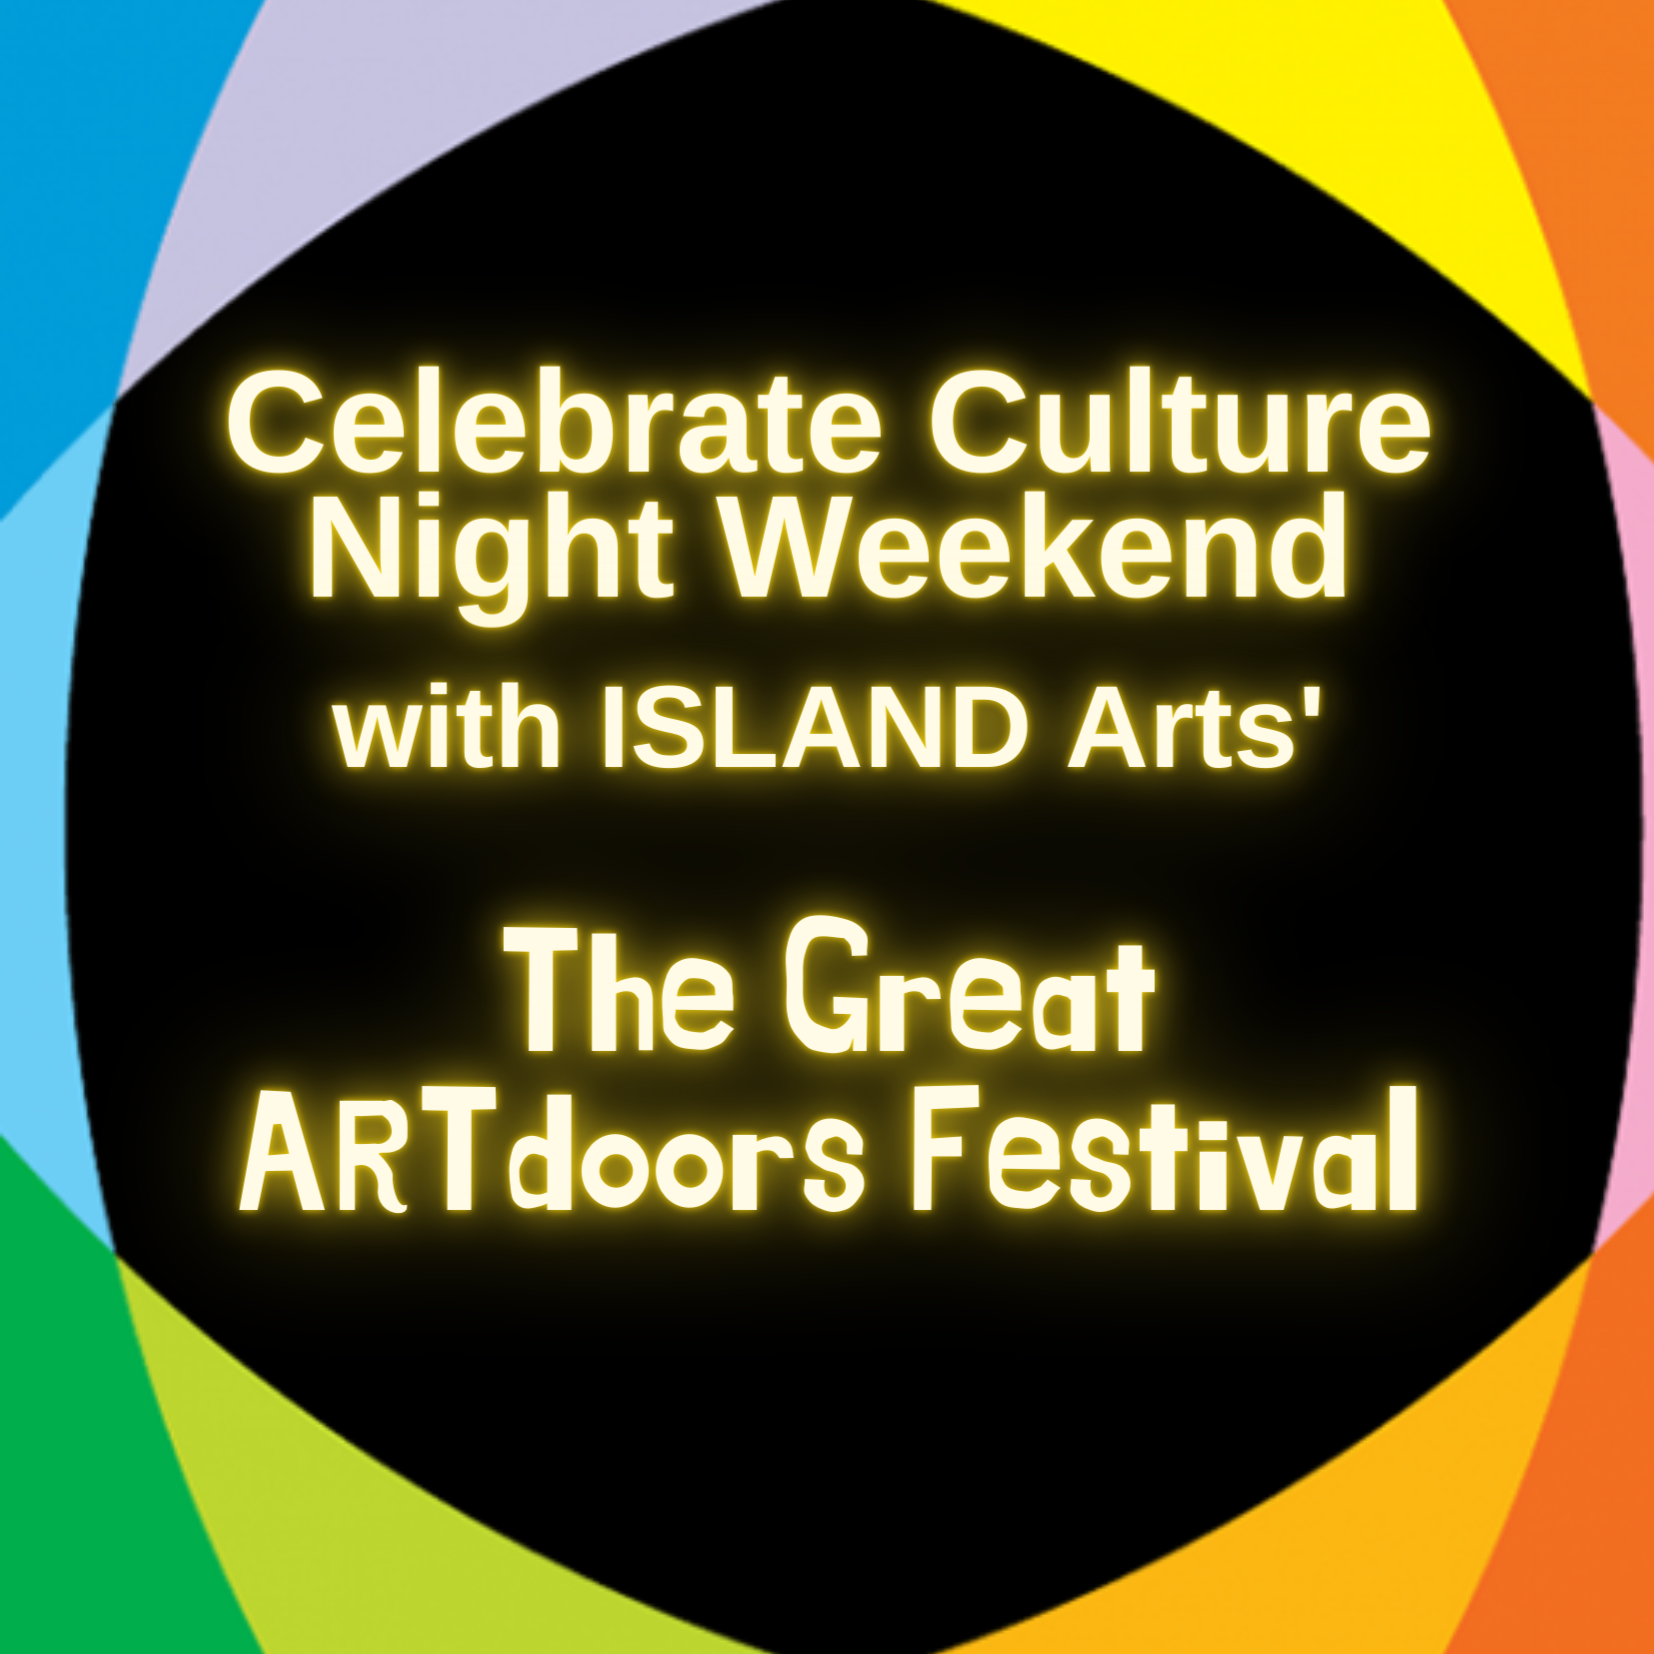 Celebrate Culture Night Weekend 18 - 20 Sept with ISLAND Arts' 'Great ARTdoors Festival'.